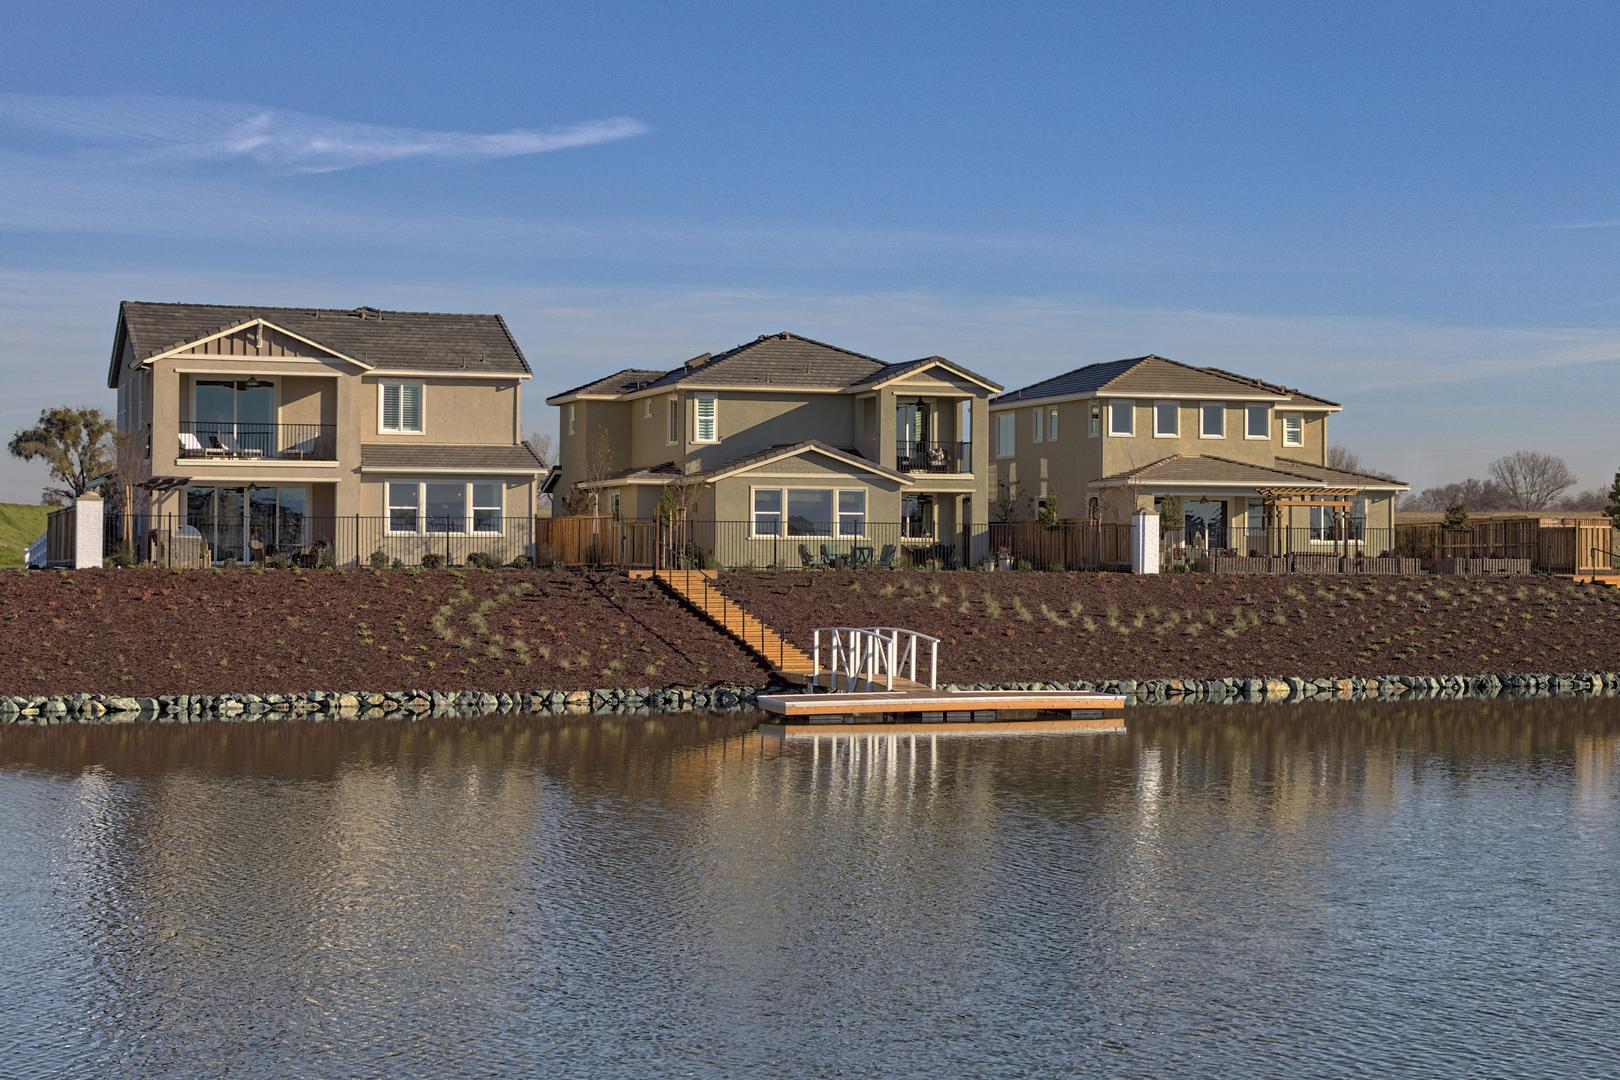 River Islands Named One of the Top 50 Master-Planned Communities of the Year